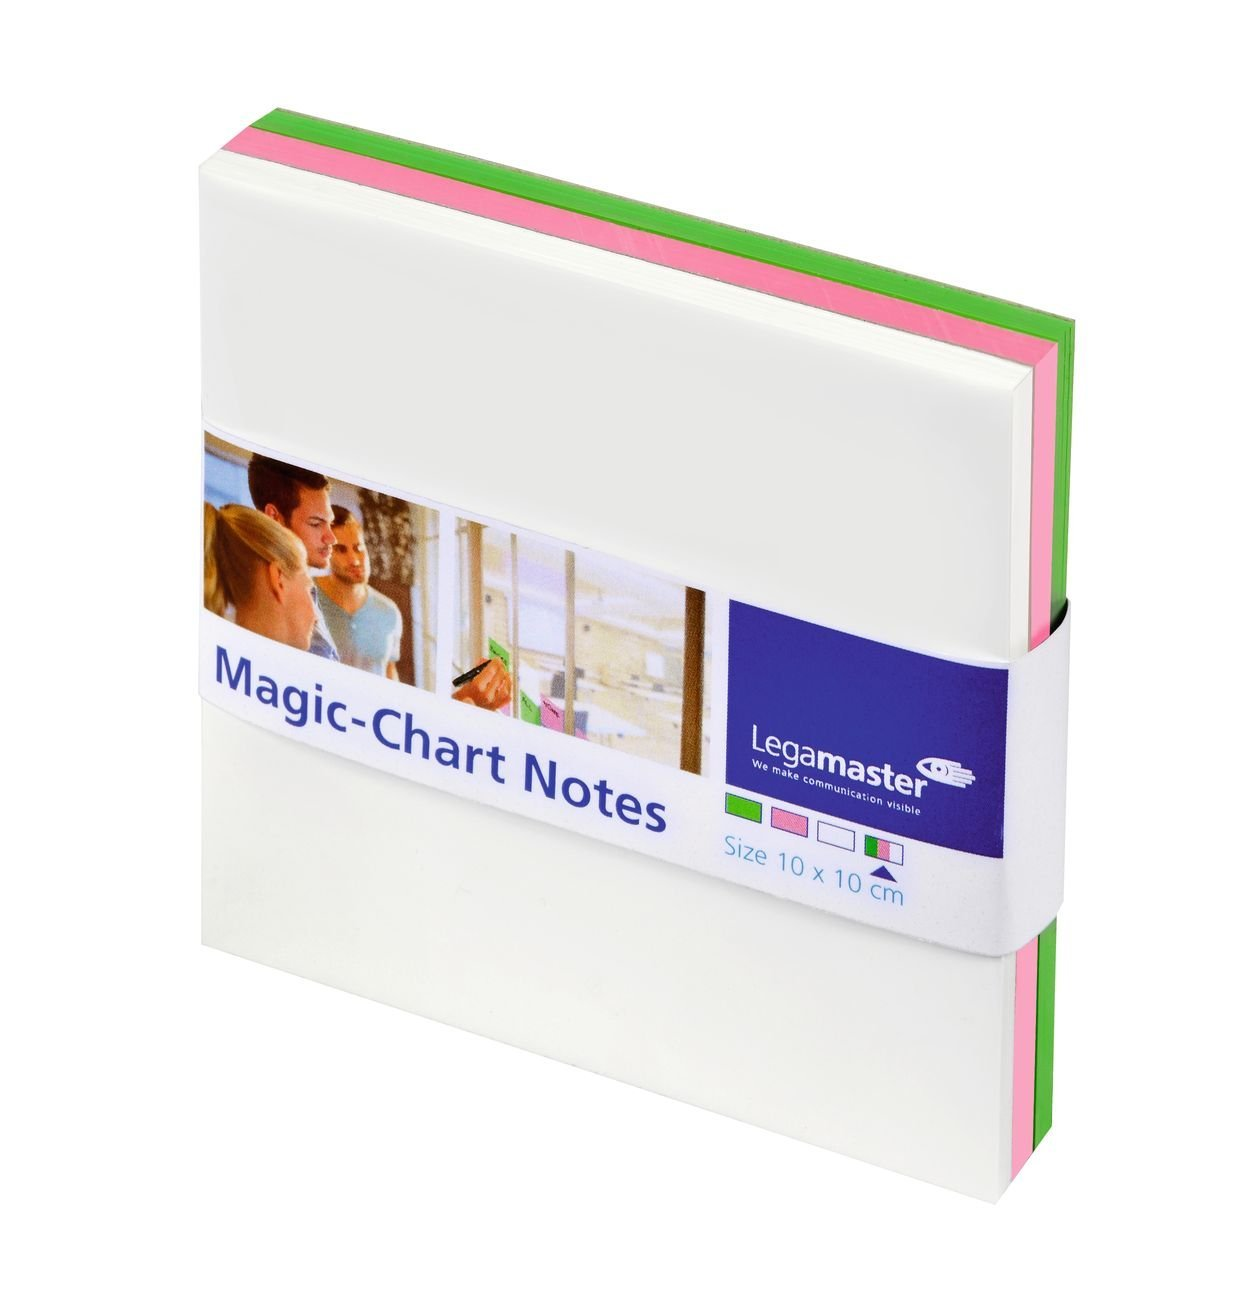 Legamaster Magic-Chart Notes Assorted 10x10cm PK250